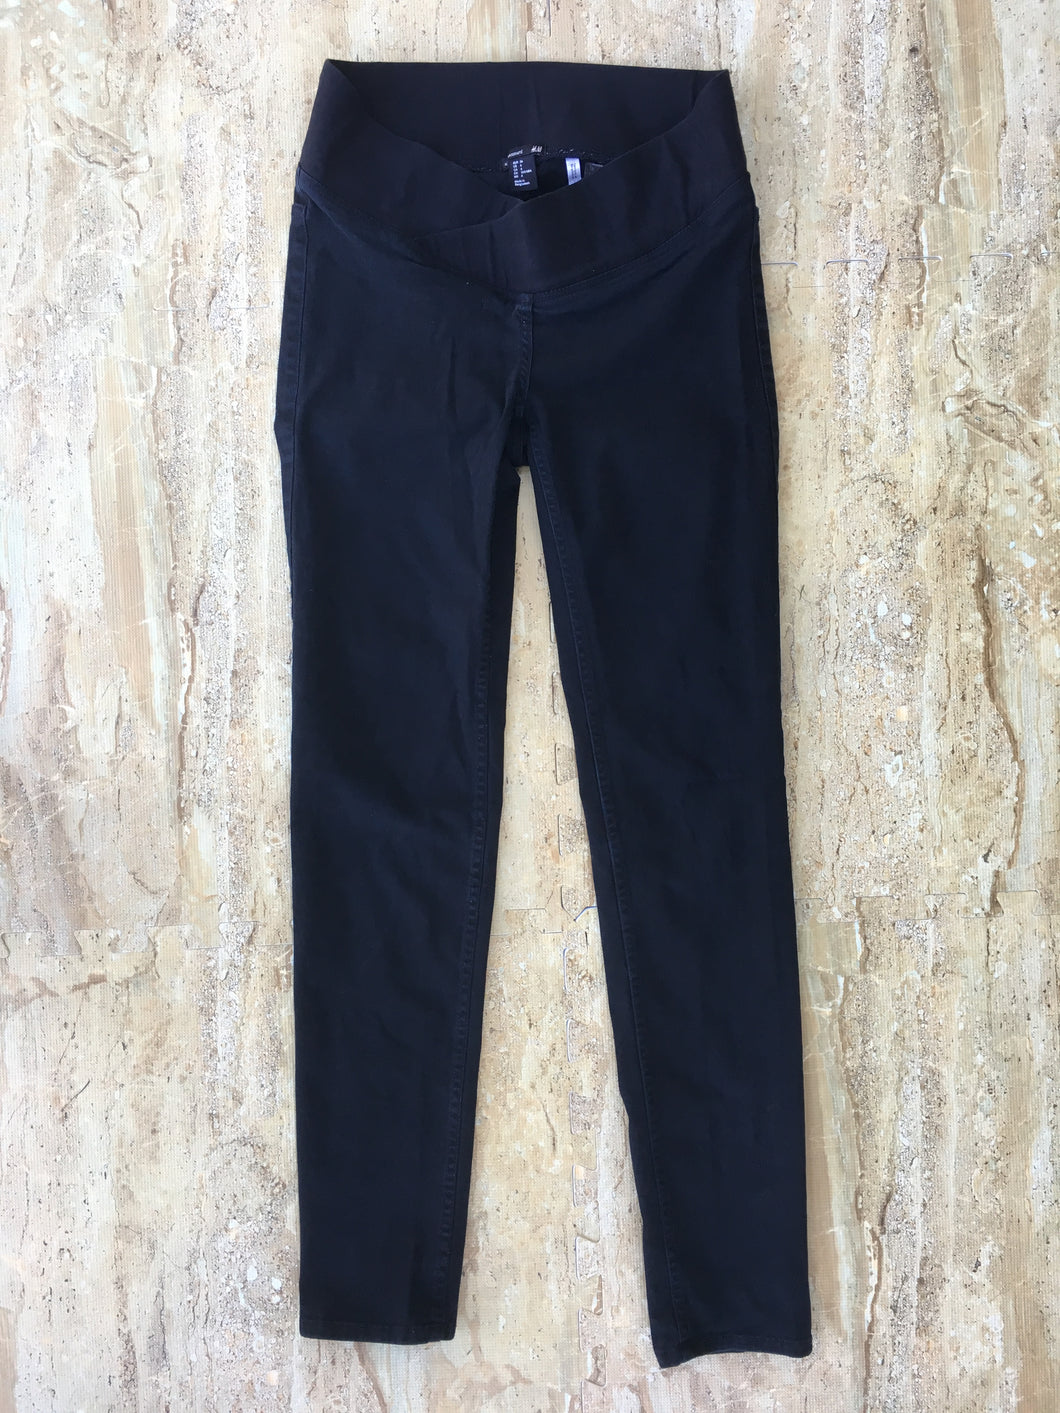 Black Denim Skinnies (2)